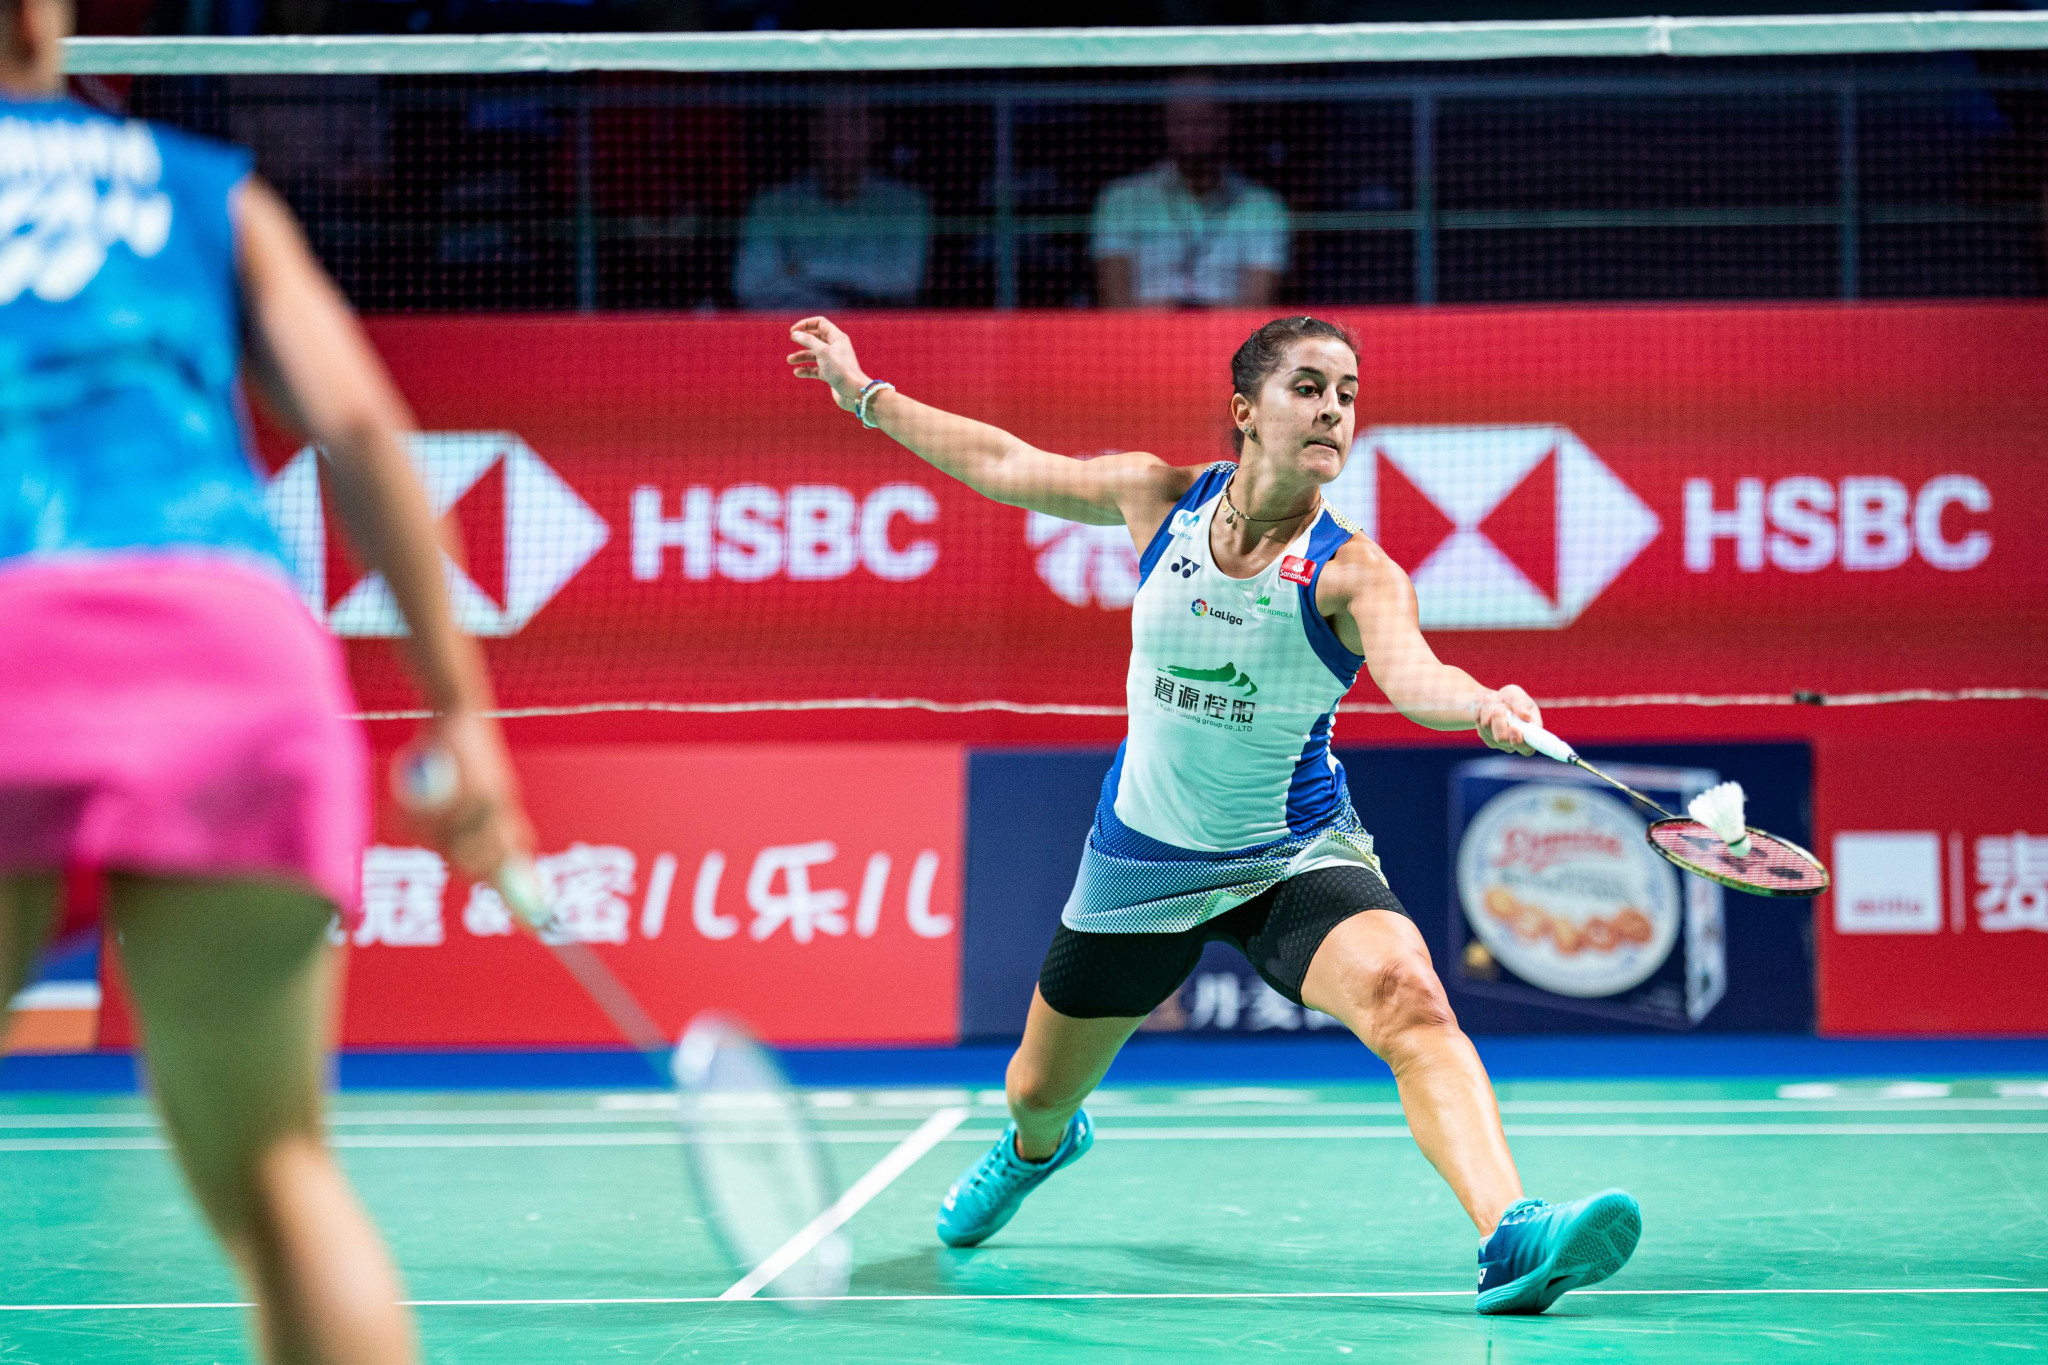 Spain's Carolina Marín is the top seed in the women's competition at the BWF World Tour Finals ©Getty Images